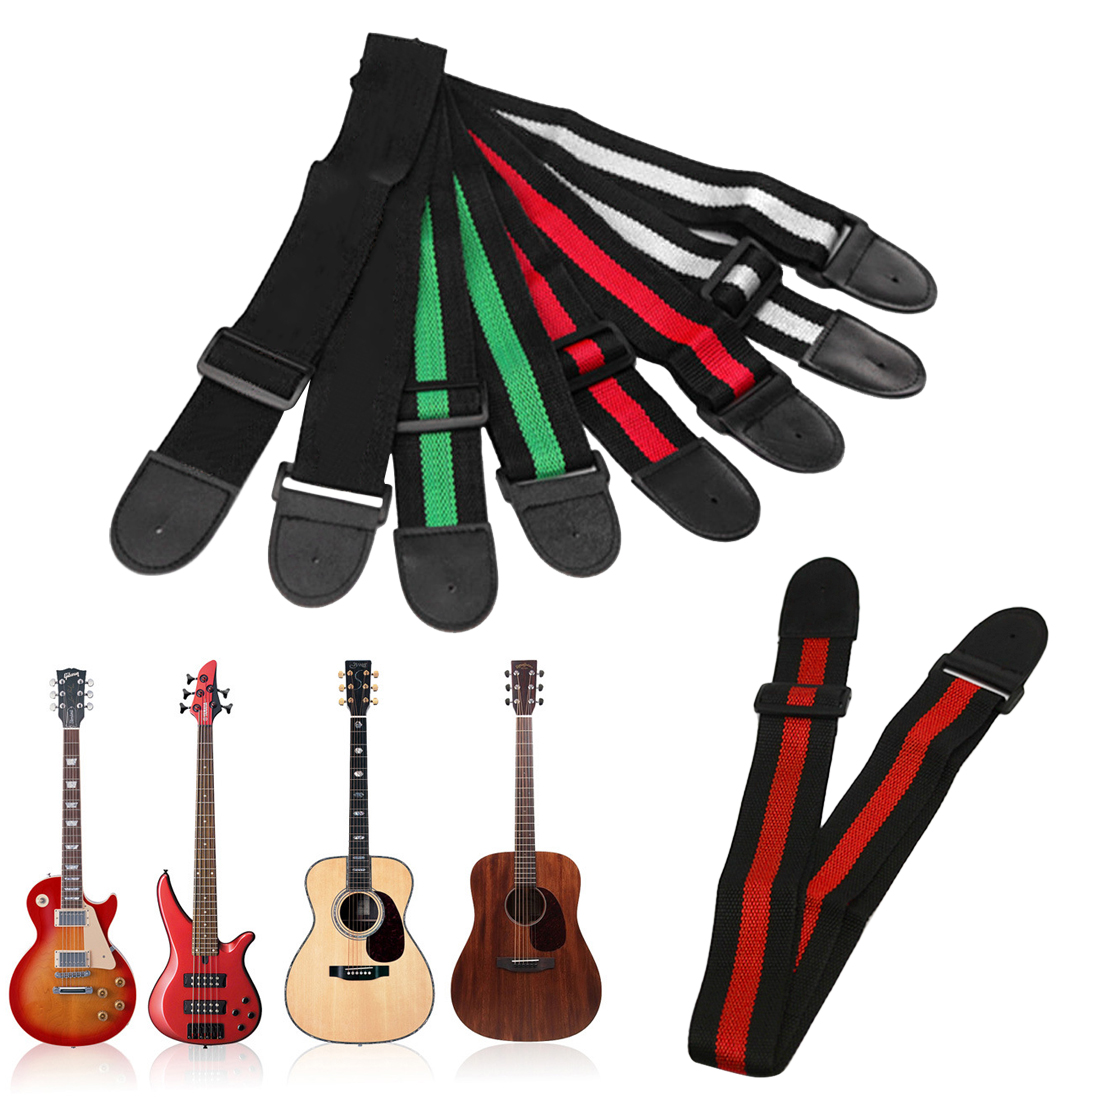 Hot Sale 95cm-158cm Adjustable Durable Nylon Guitar Strap Electric Acoustic Bass Guitar Strap Ukulele Belt With PU Leather Ends